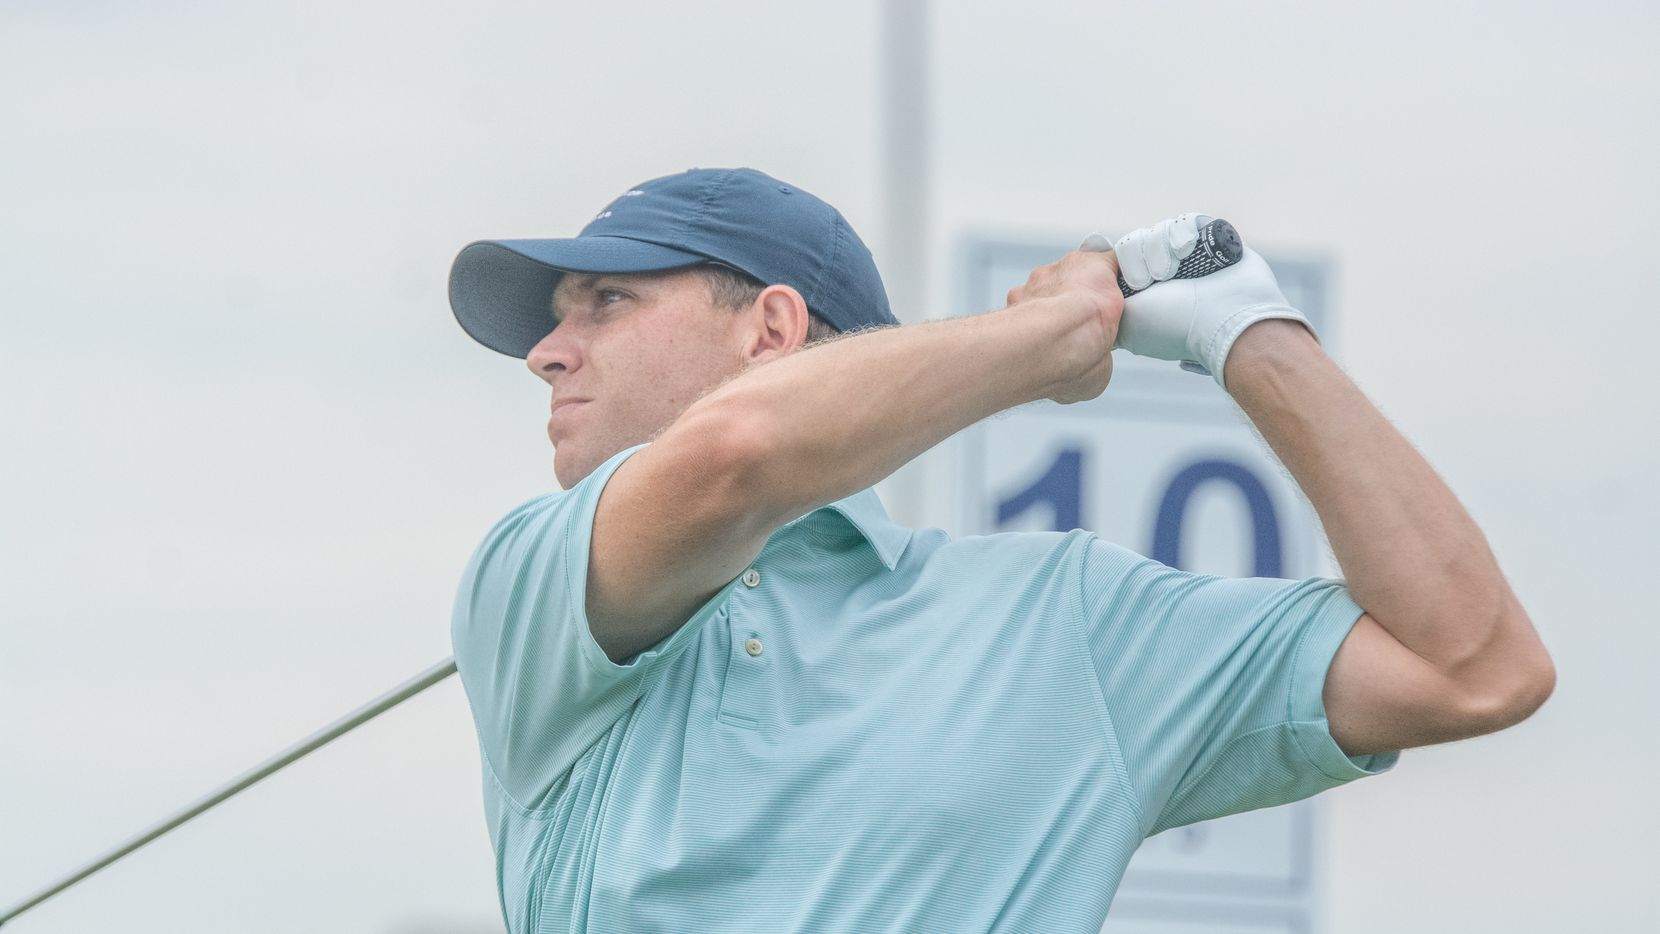 Chad Moscovic, the director of instruction at Brook Hollow Country Club, rolled to a four-shot victory in the Northern Texas PGA Professional Championship with a 10-under 132 at Wildhorse Golf Club at Robson Ranch in Denton on Tuesday, Aug. 18, 2020.